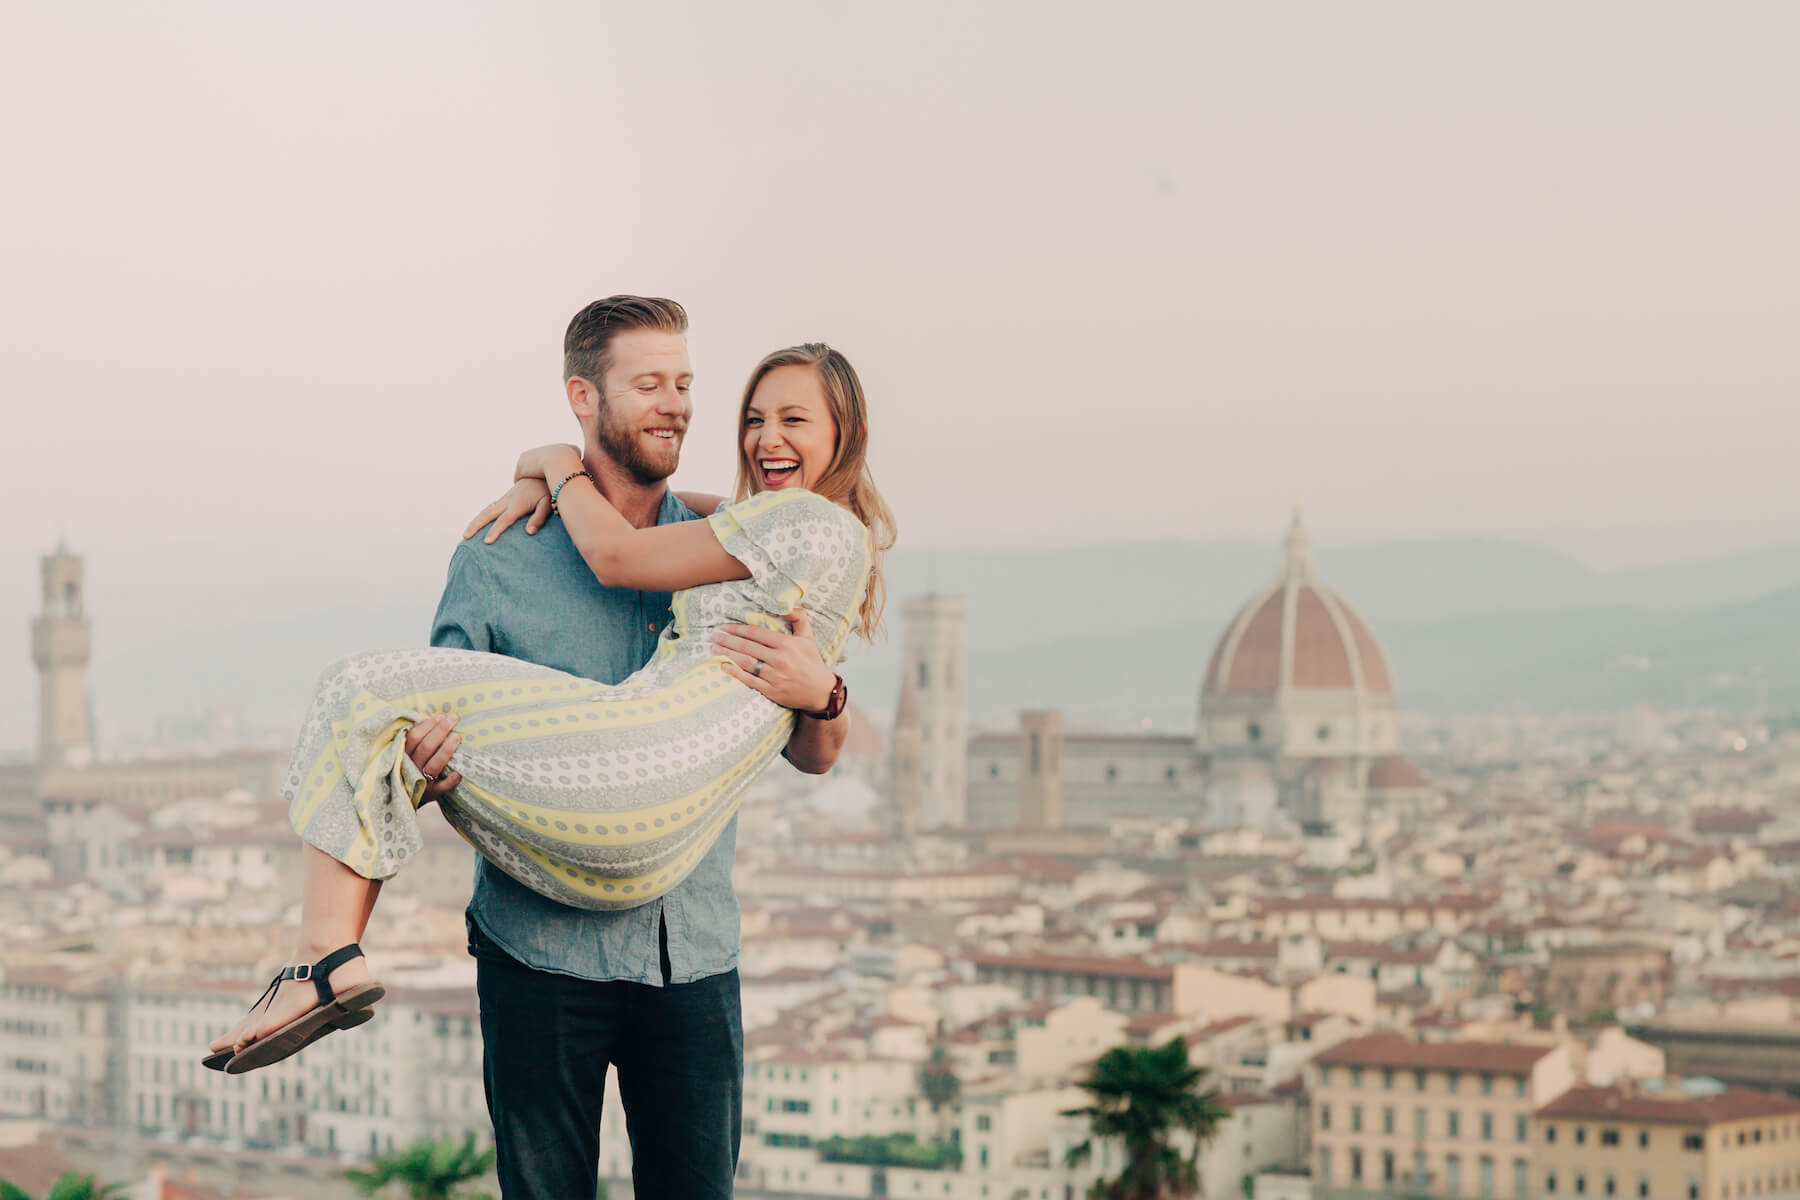 Man holding partner in his arms at Piazzale Michelangelo in Florence, Italy